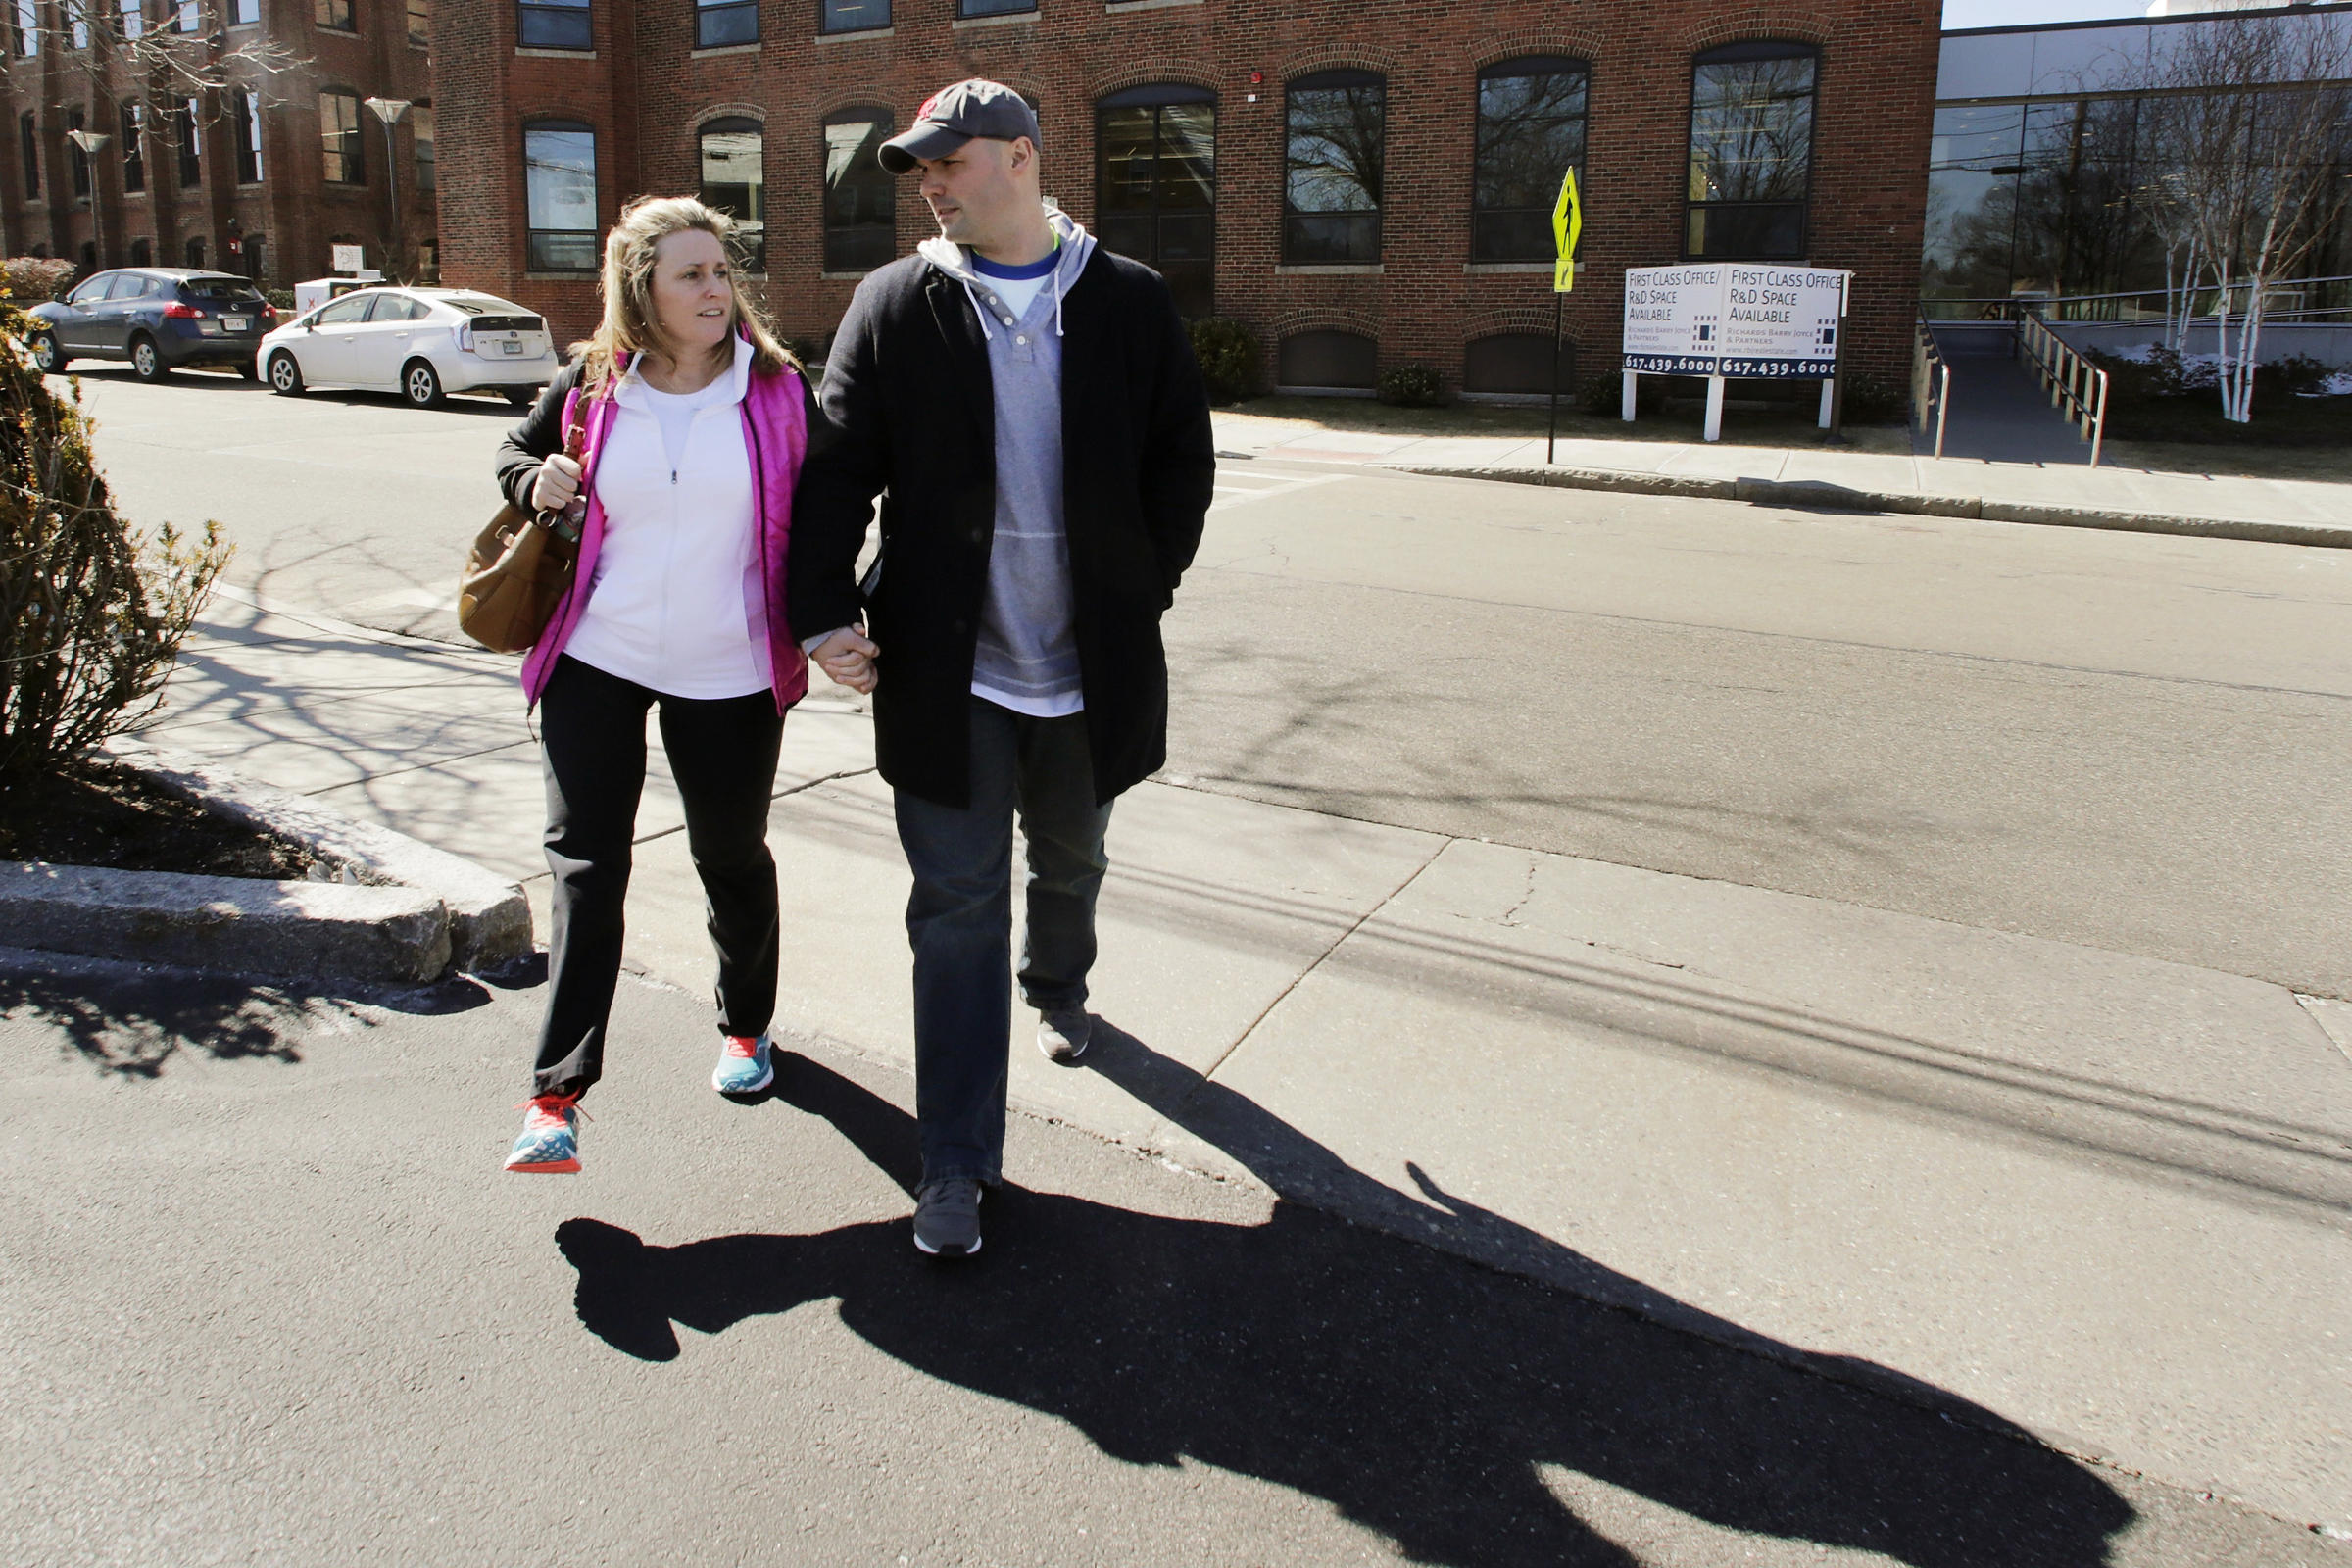 Sdoia walks with Boston firefighter Mike Materia in 2014 after a doctor's appointment in Newton Mass. She and Materia are now married